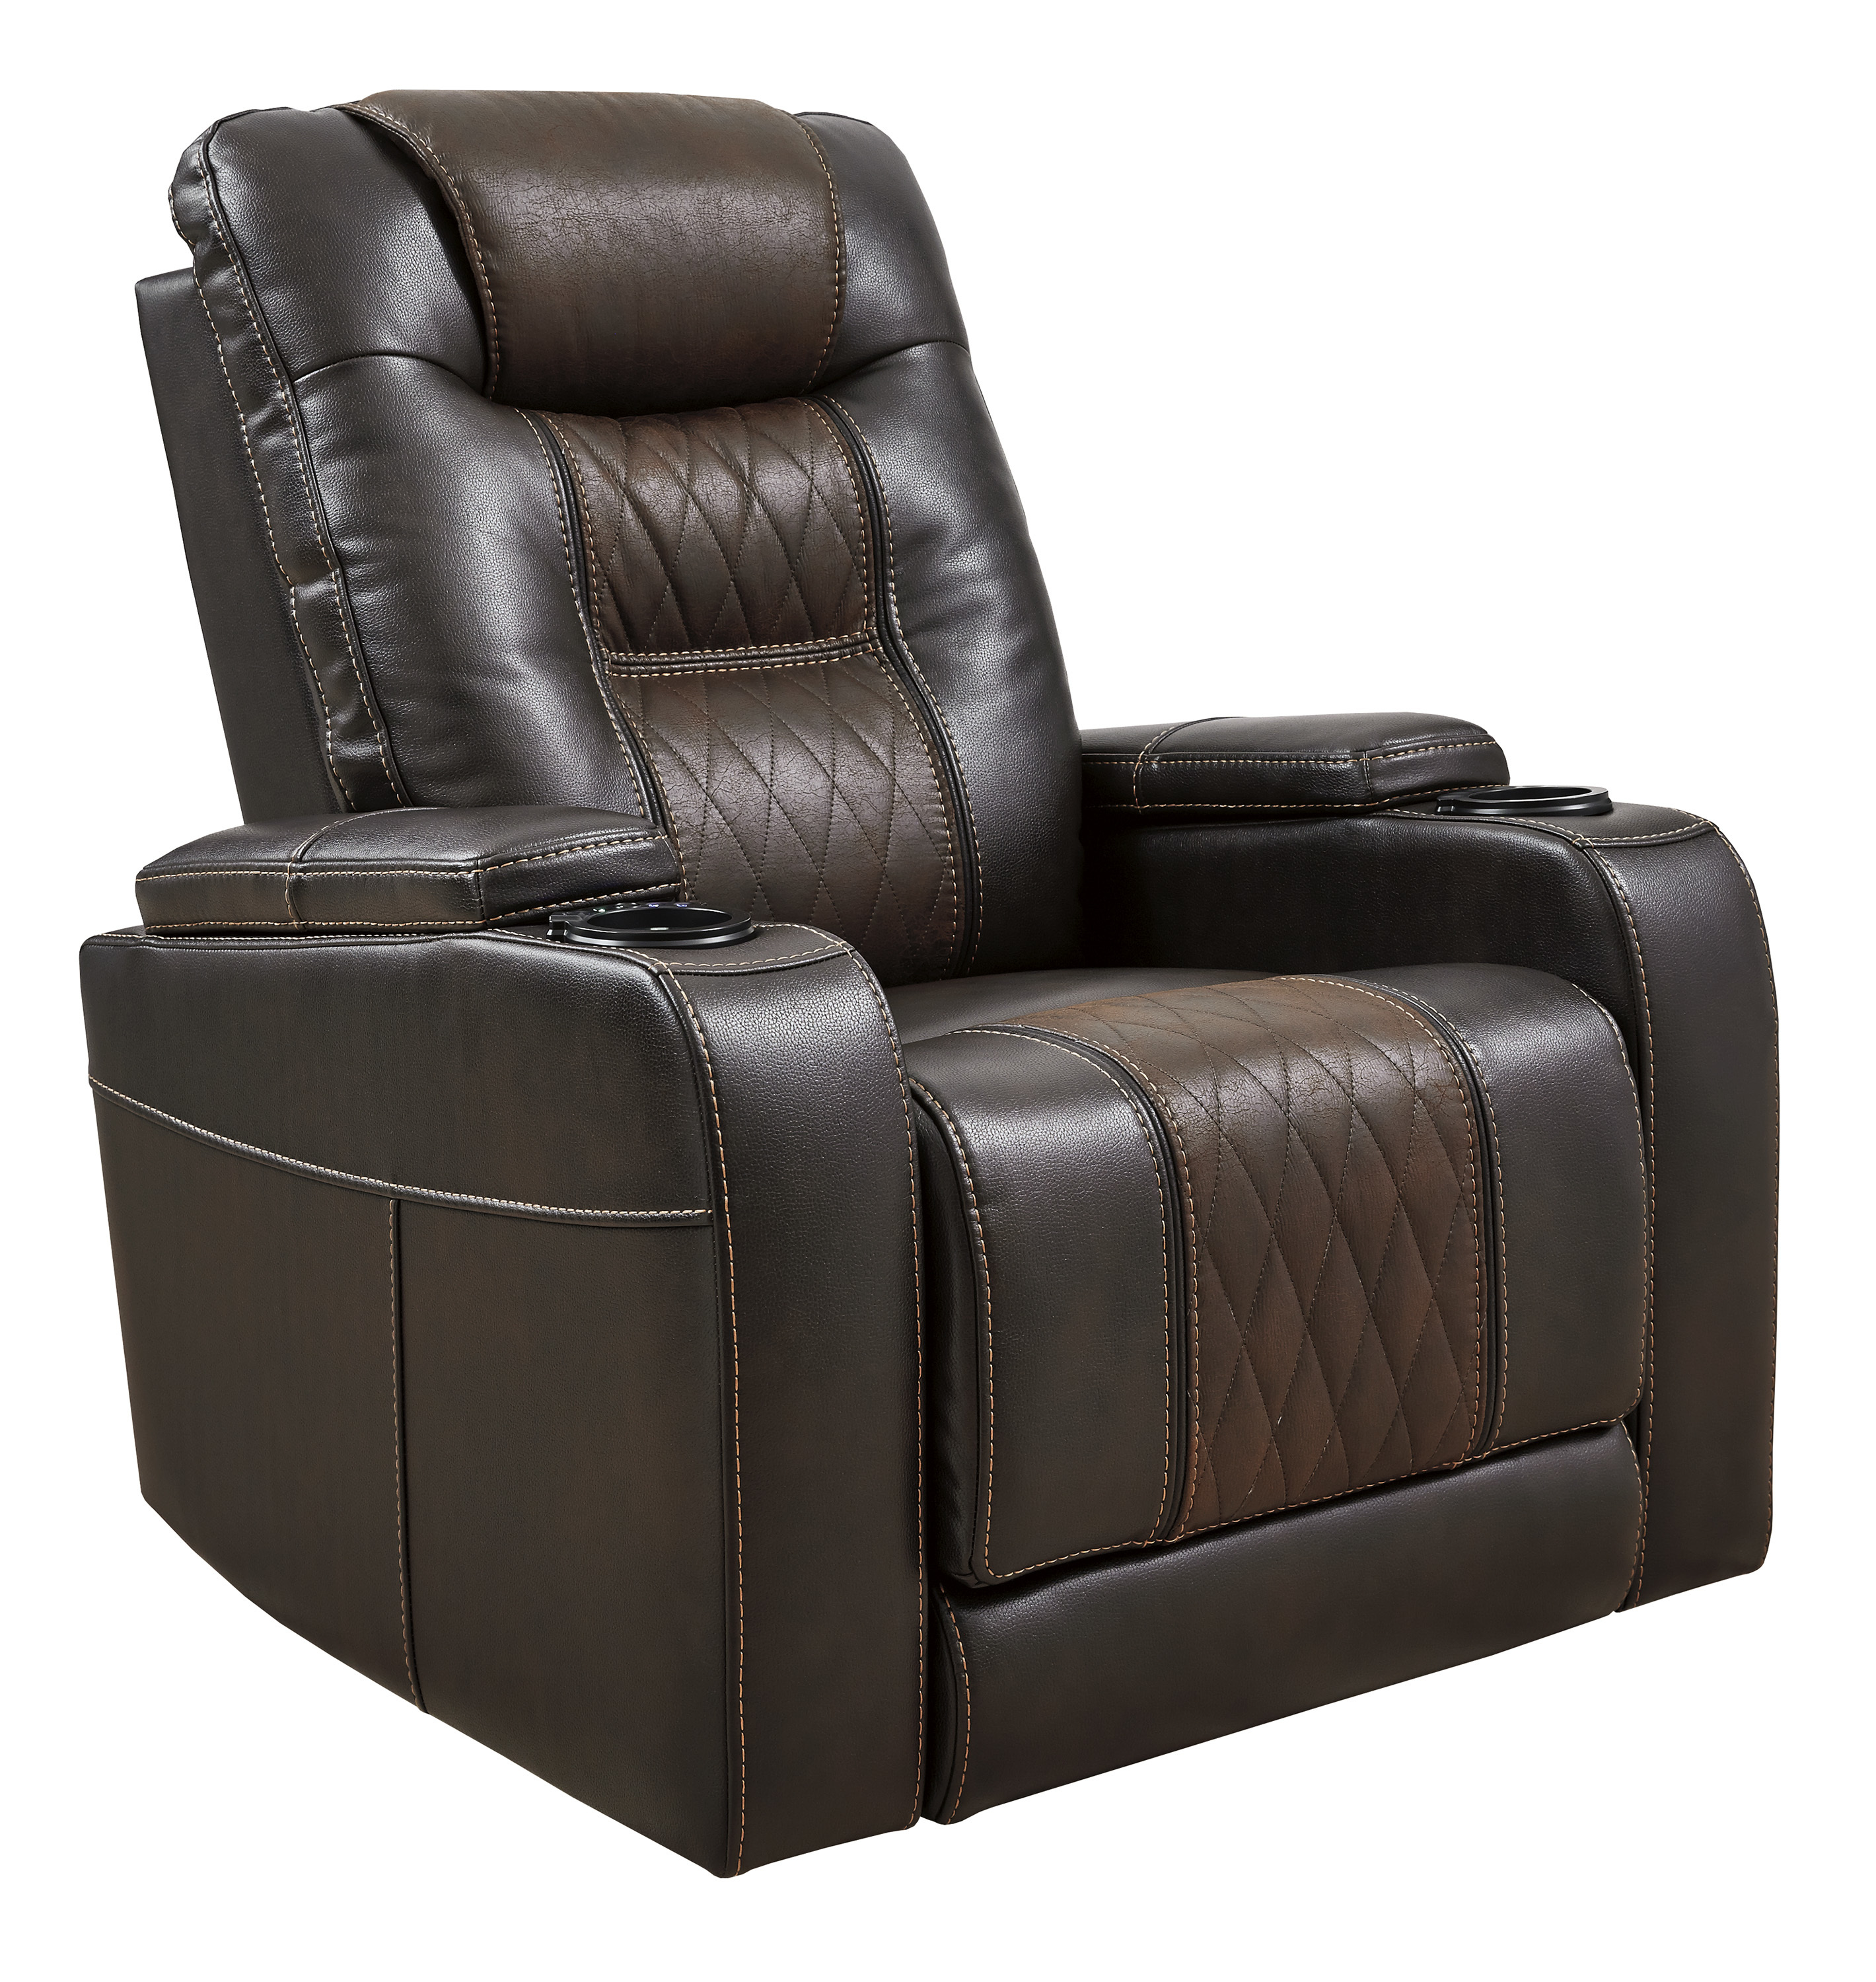 Picture of: Recliner Home Theater By Signature Design By Ashley 2150713 Furniture Mall Of Kansas